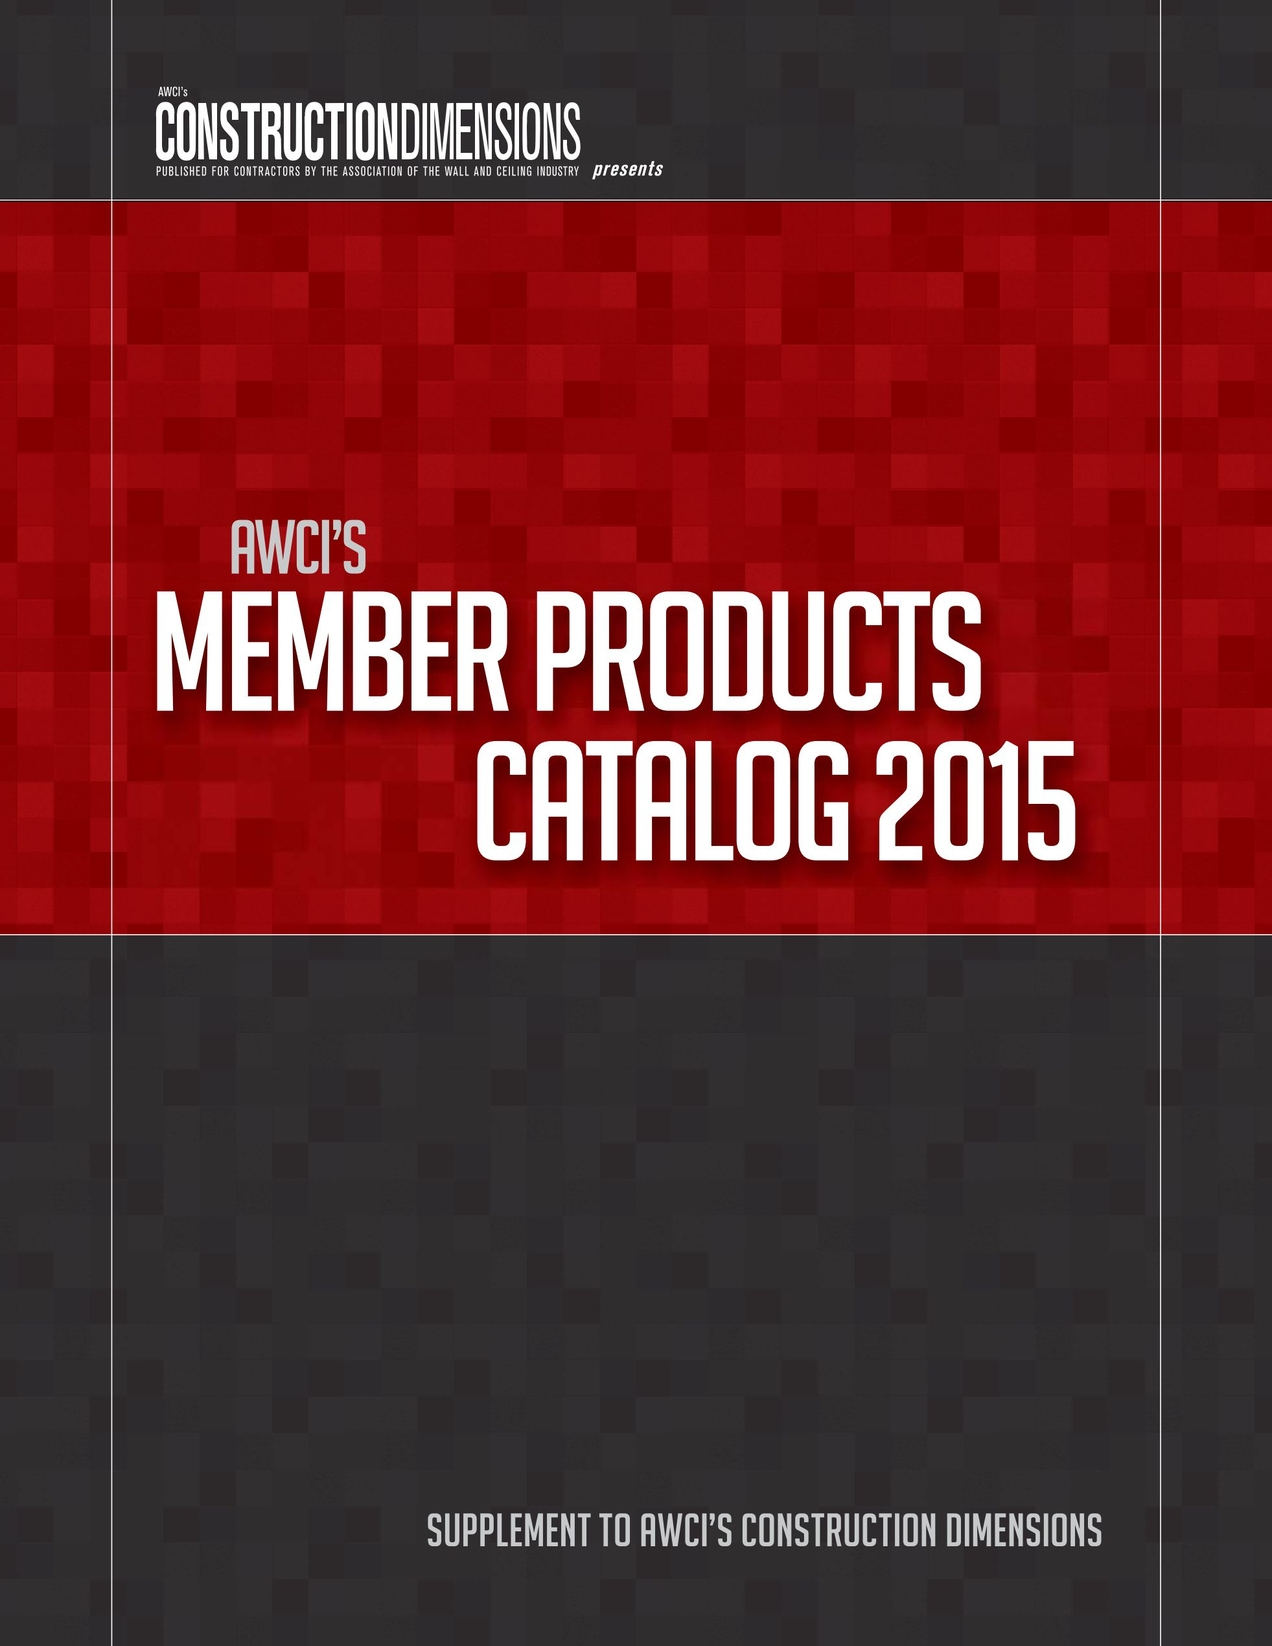 Member Products Catalog 2015